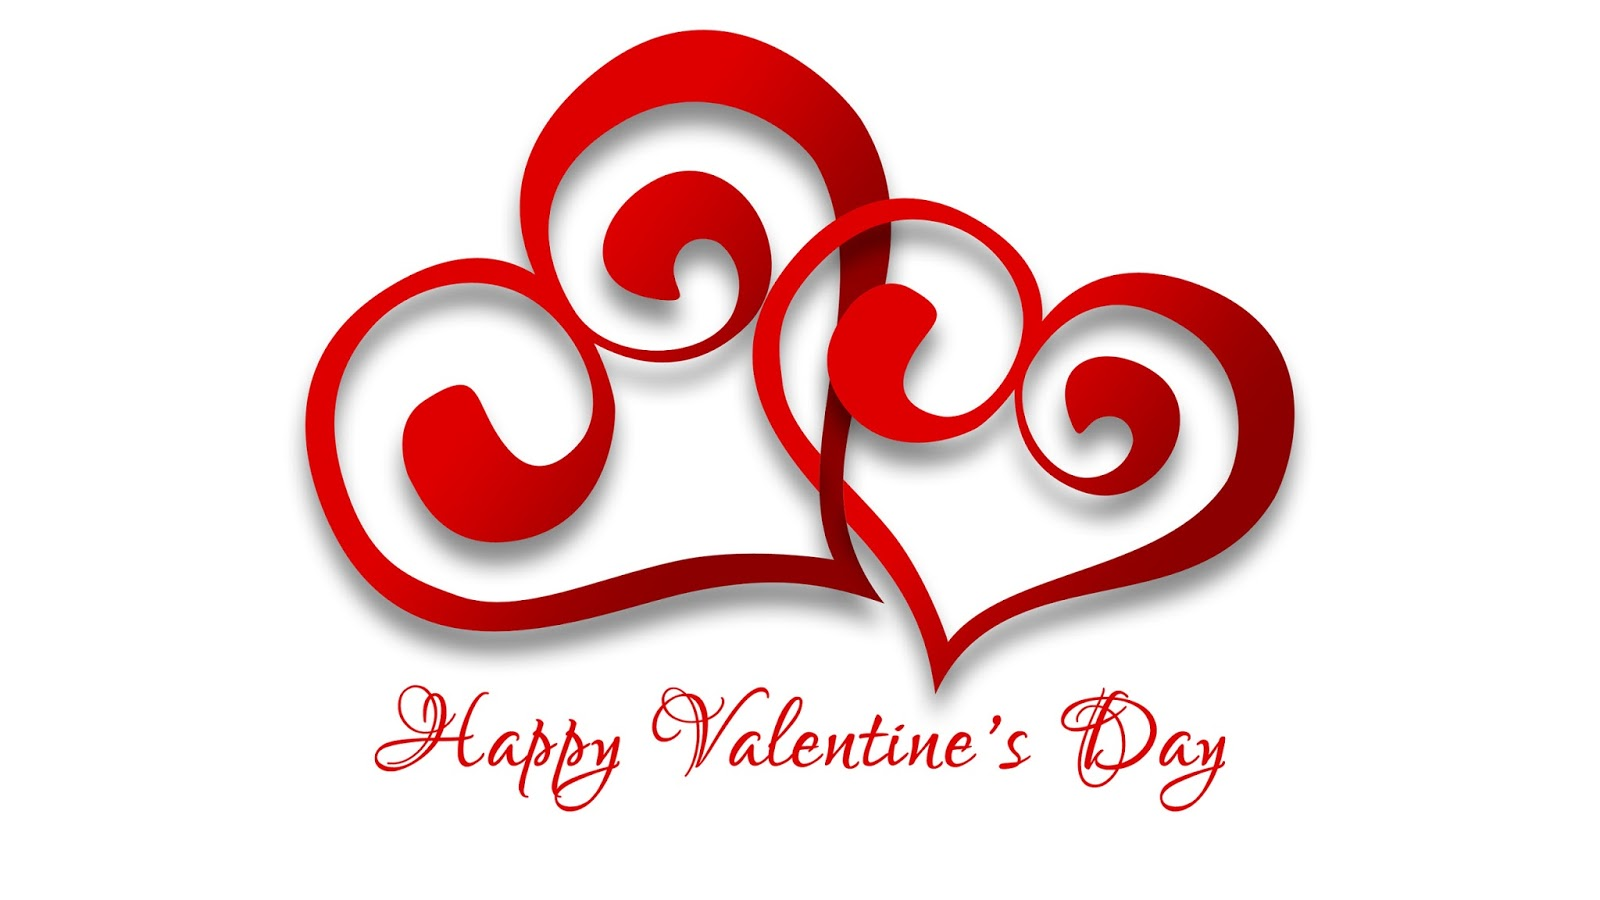 valentine special wallpapers images 2016 valentines day ideas